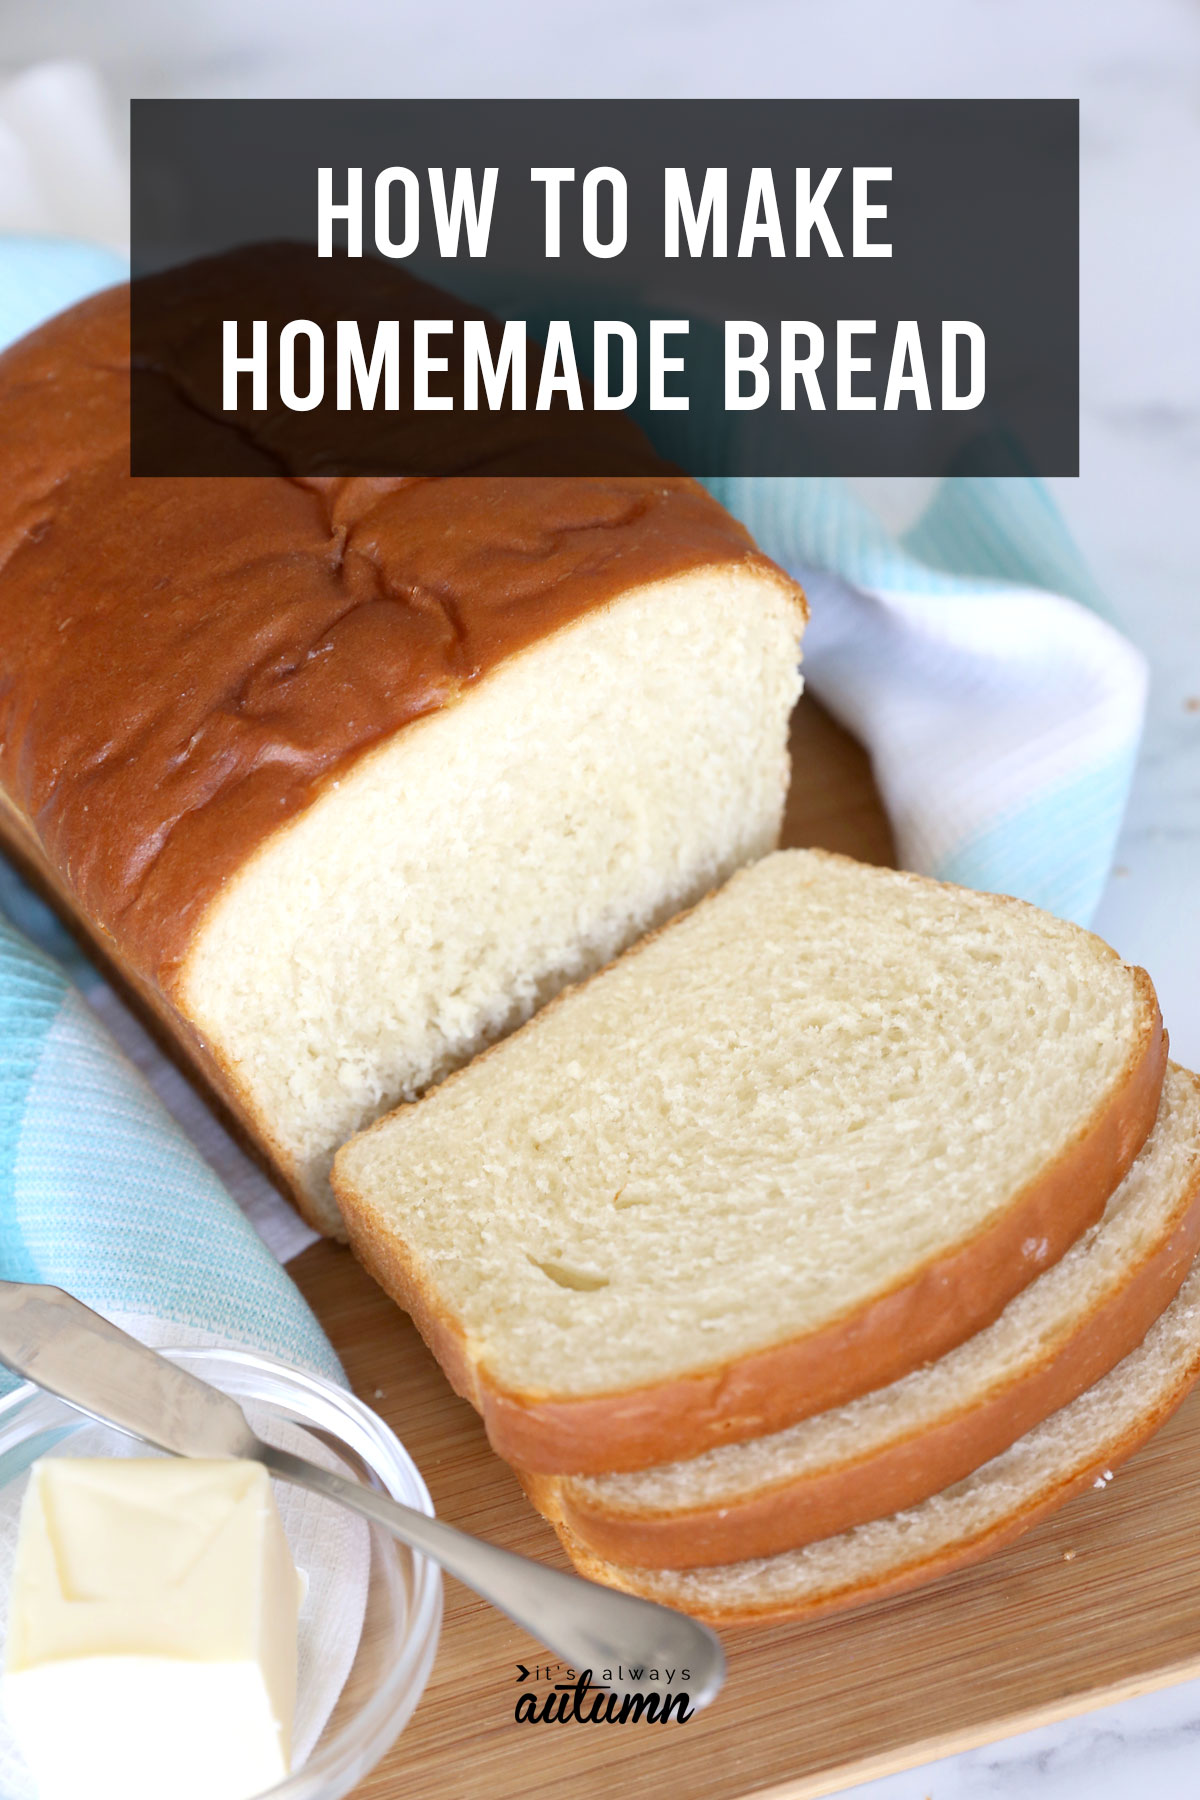 This is THE BEST homemade bread recipe! Includes step by step video instructions.